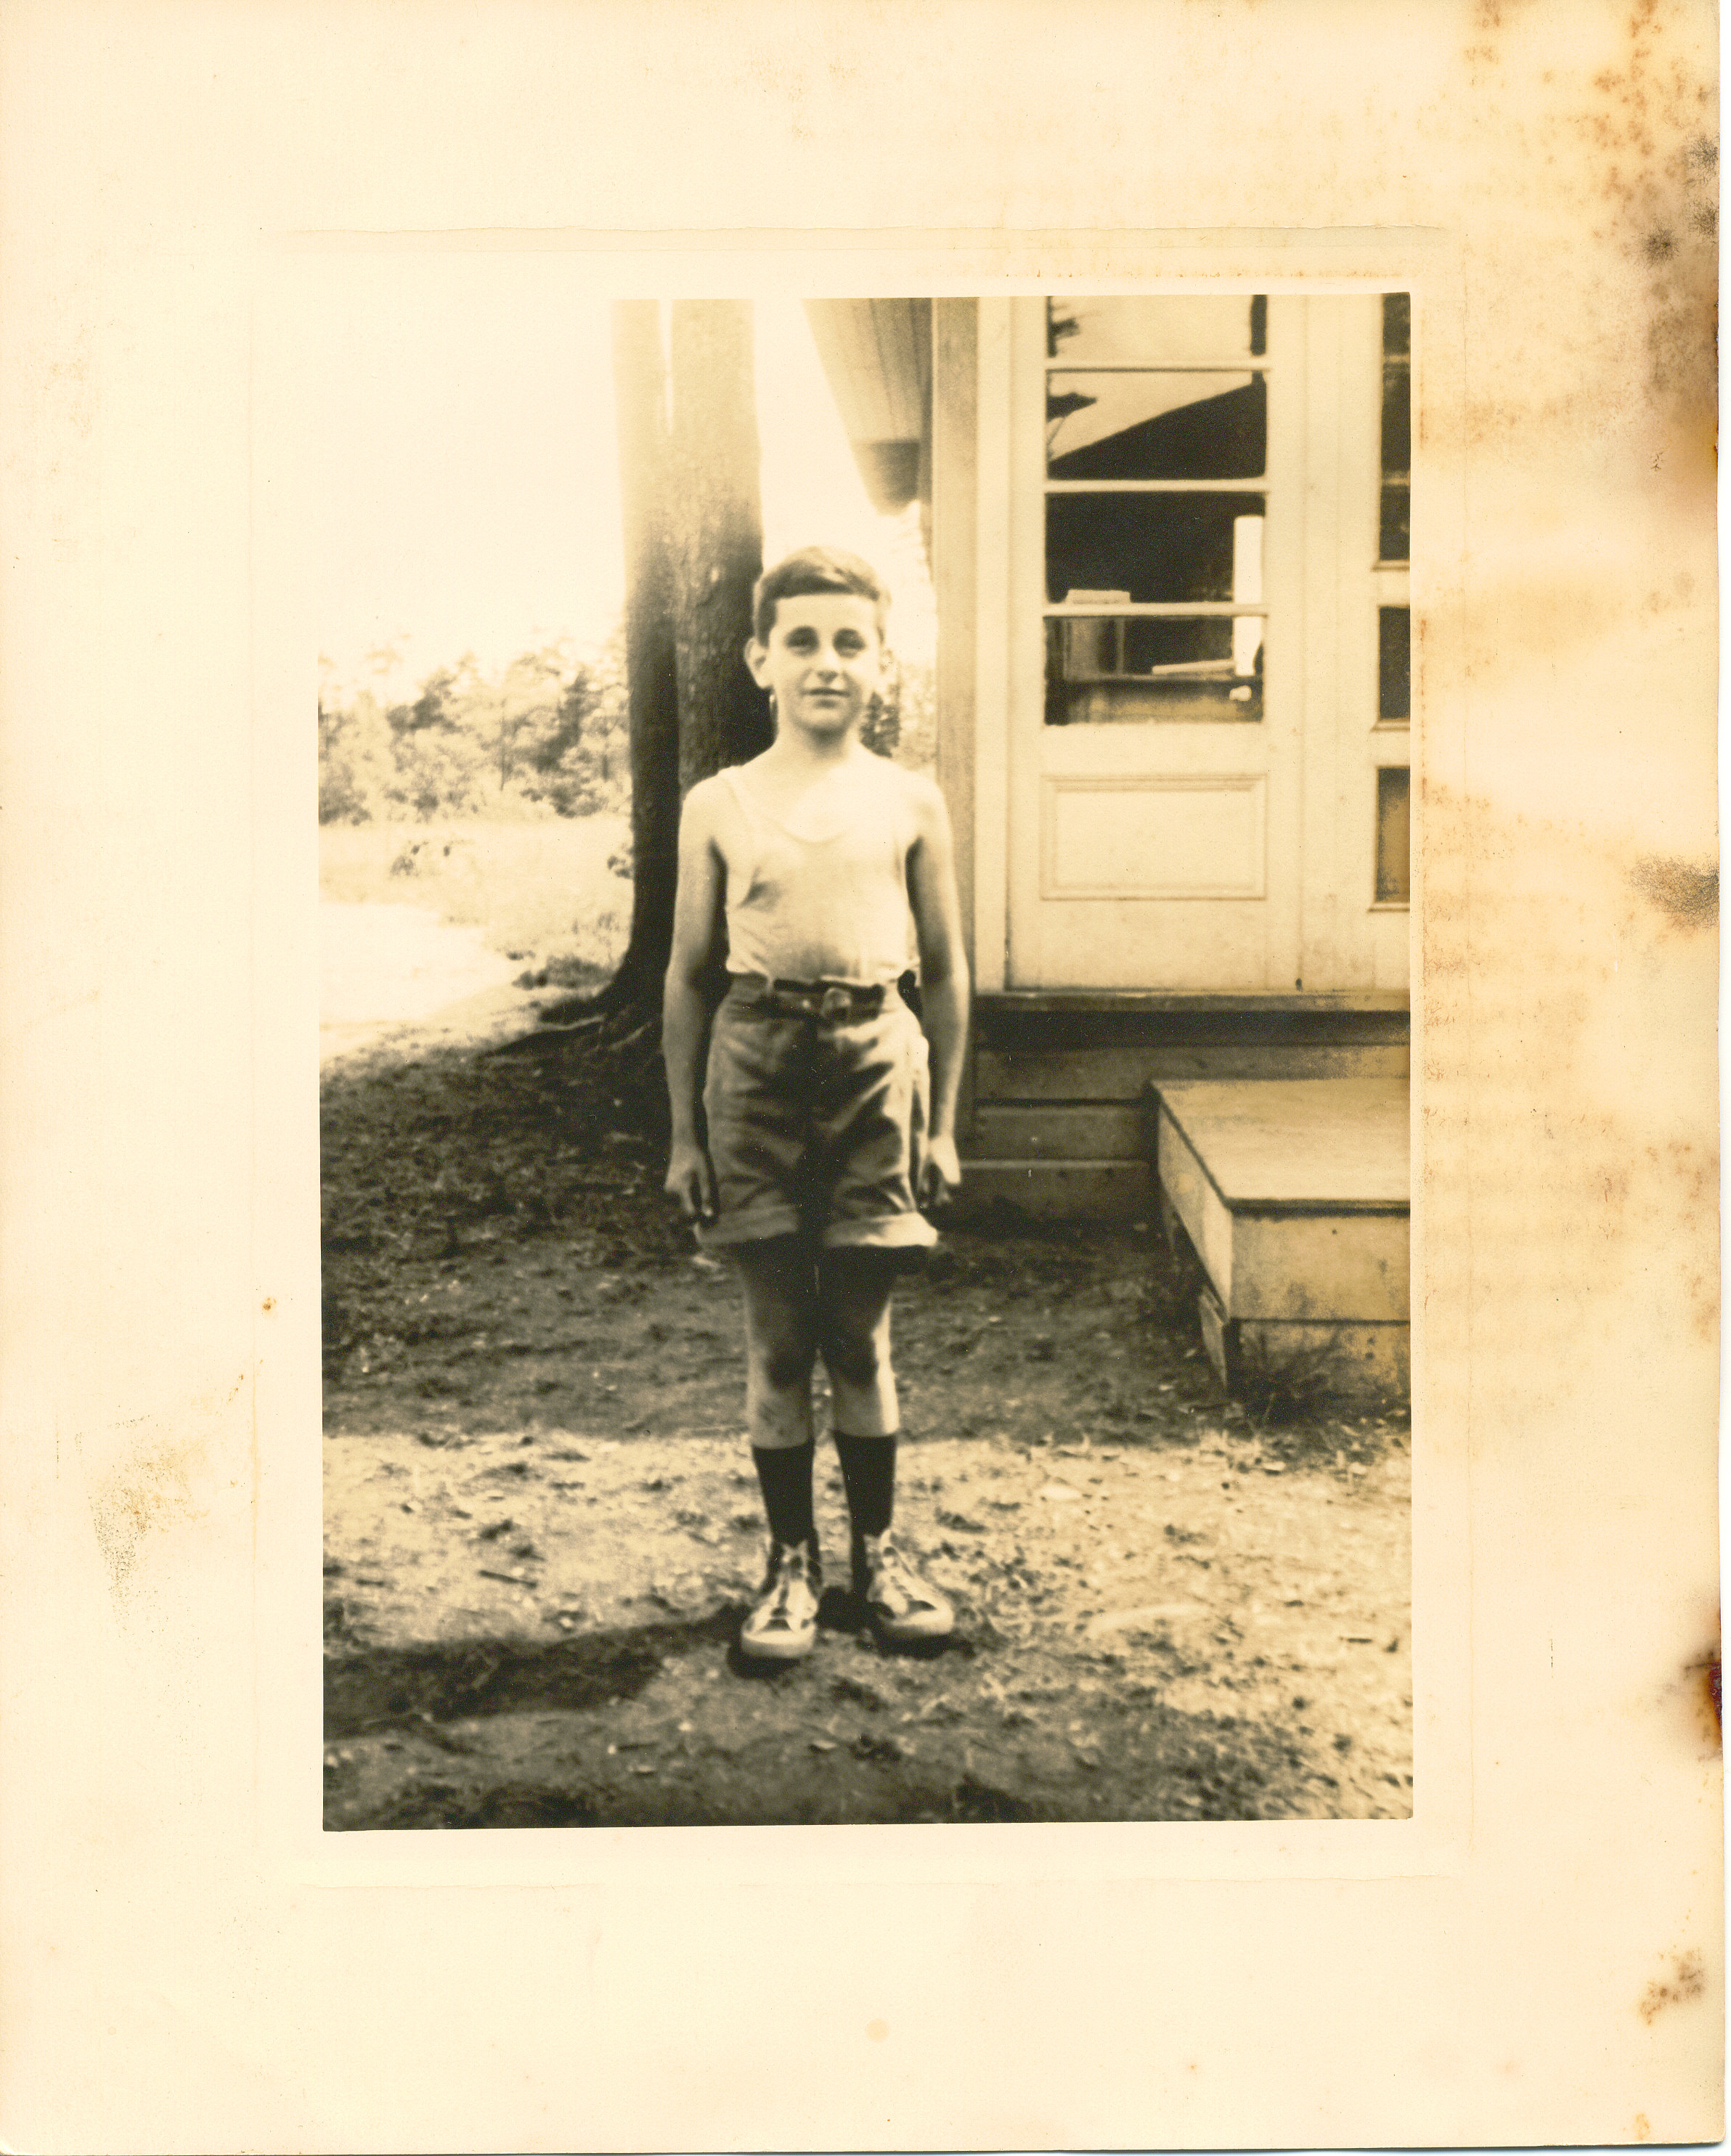 Gus Gatti at EB Camps circa 1937.jpg